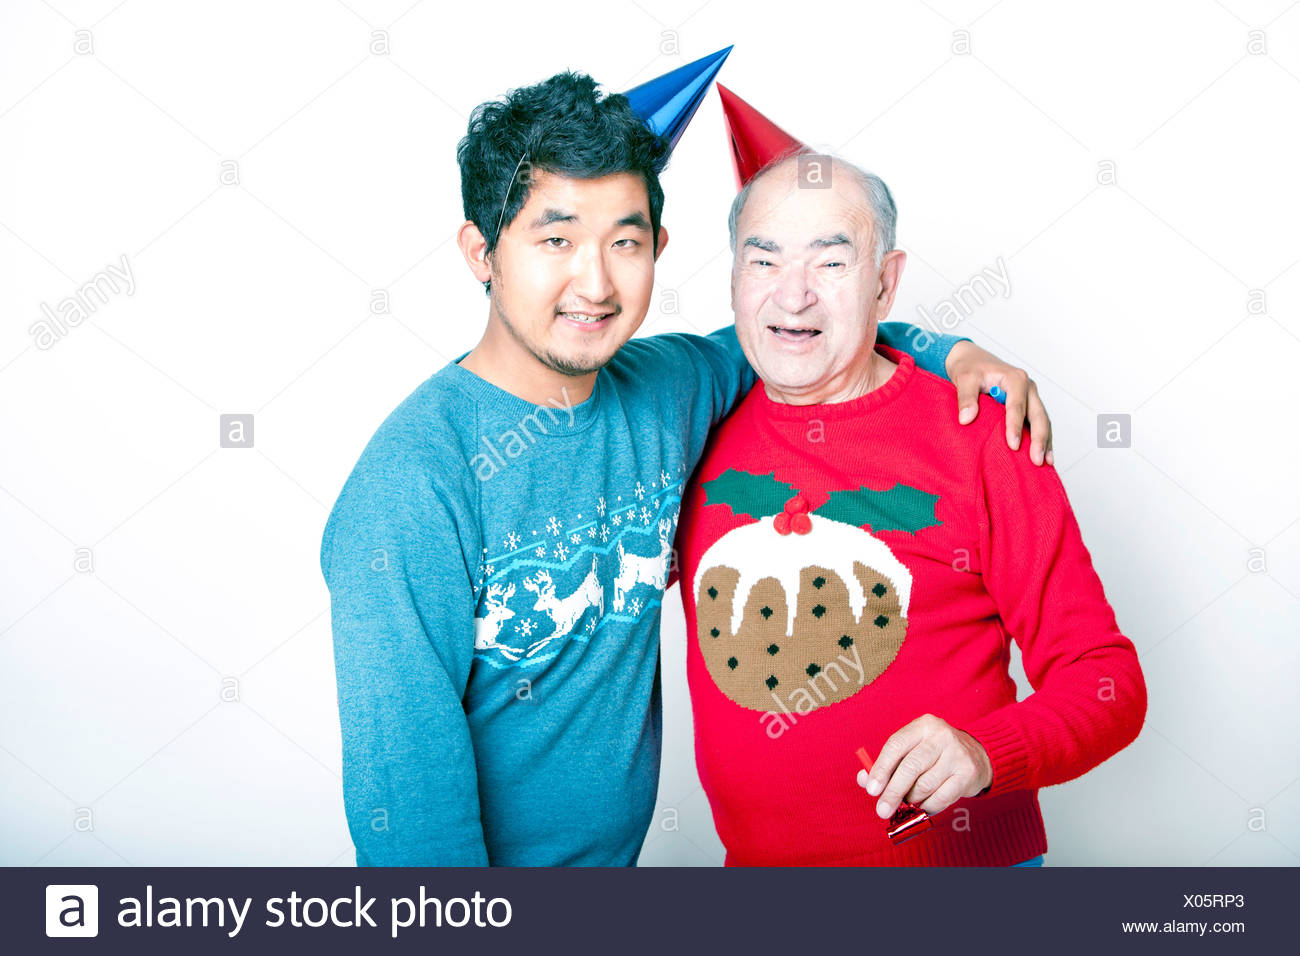 Portrait a Senior adult man a young Asian man wearing Christmas jumpers party hats - Stock Image